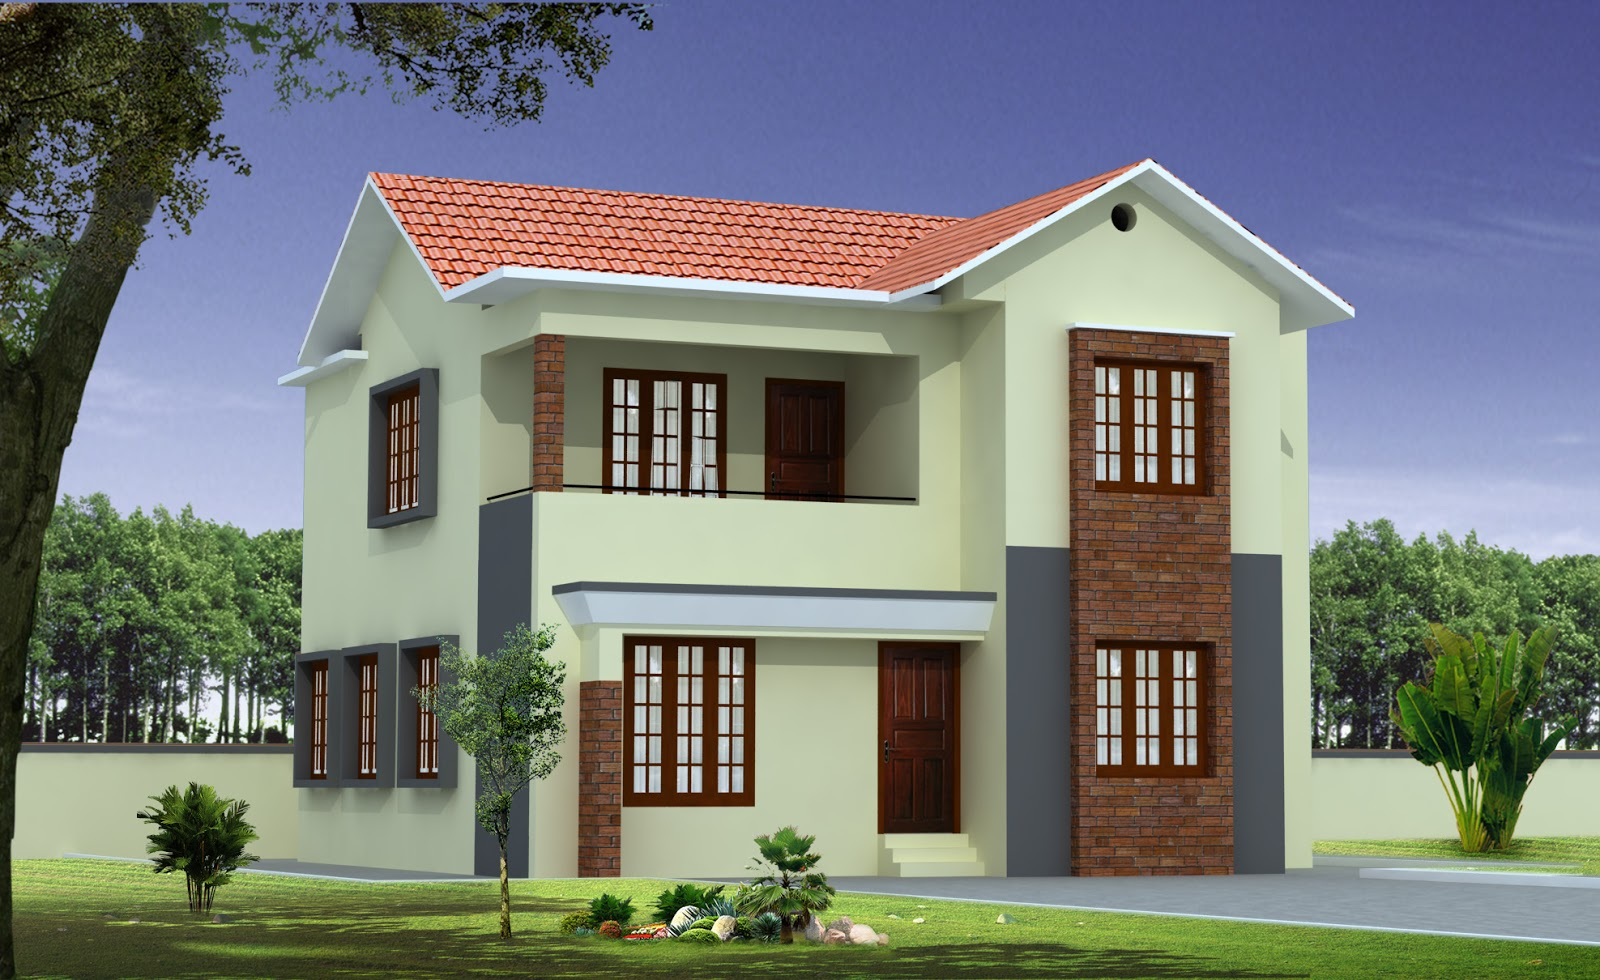 Build a building latest home designs House and home designs